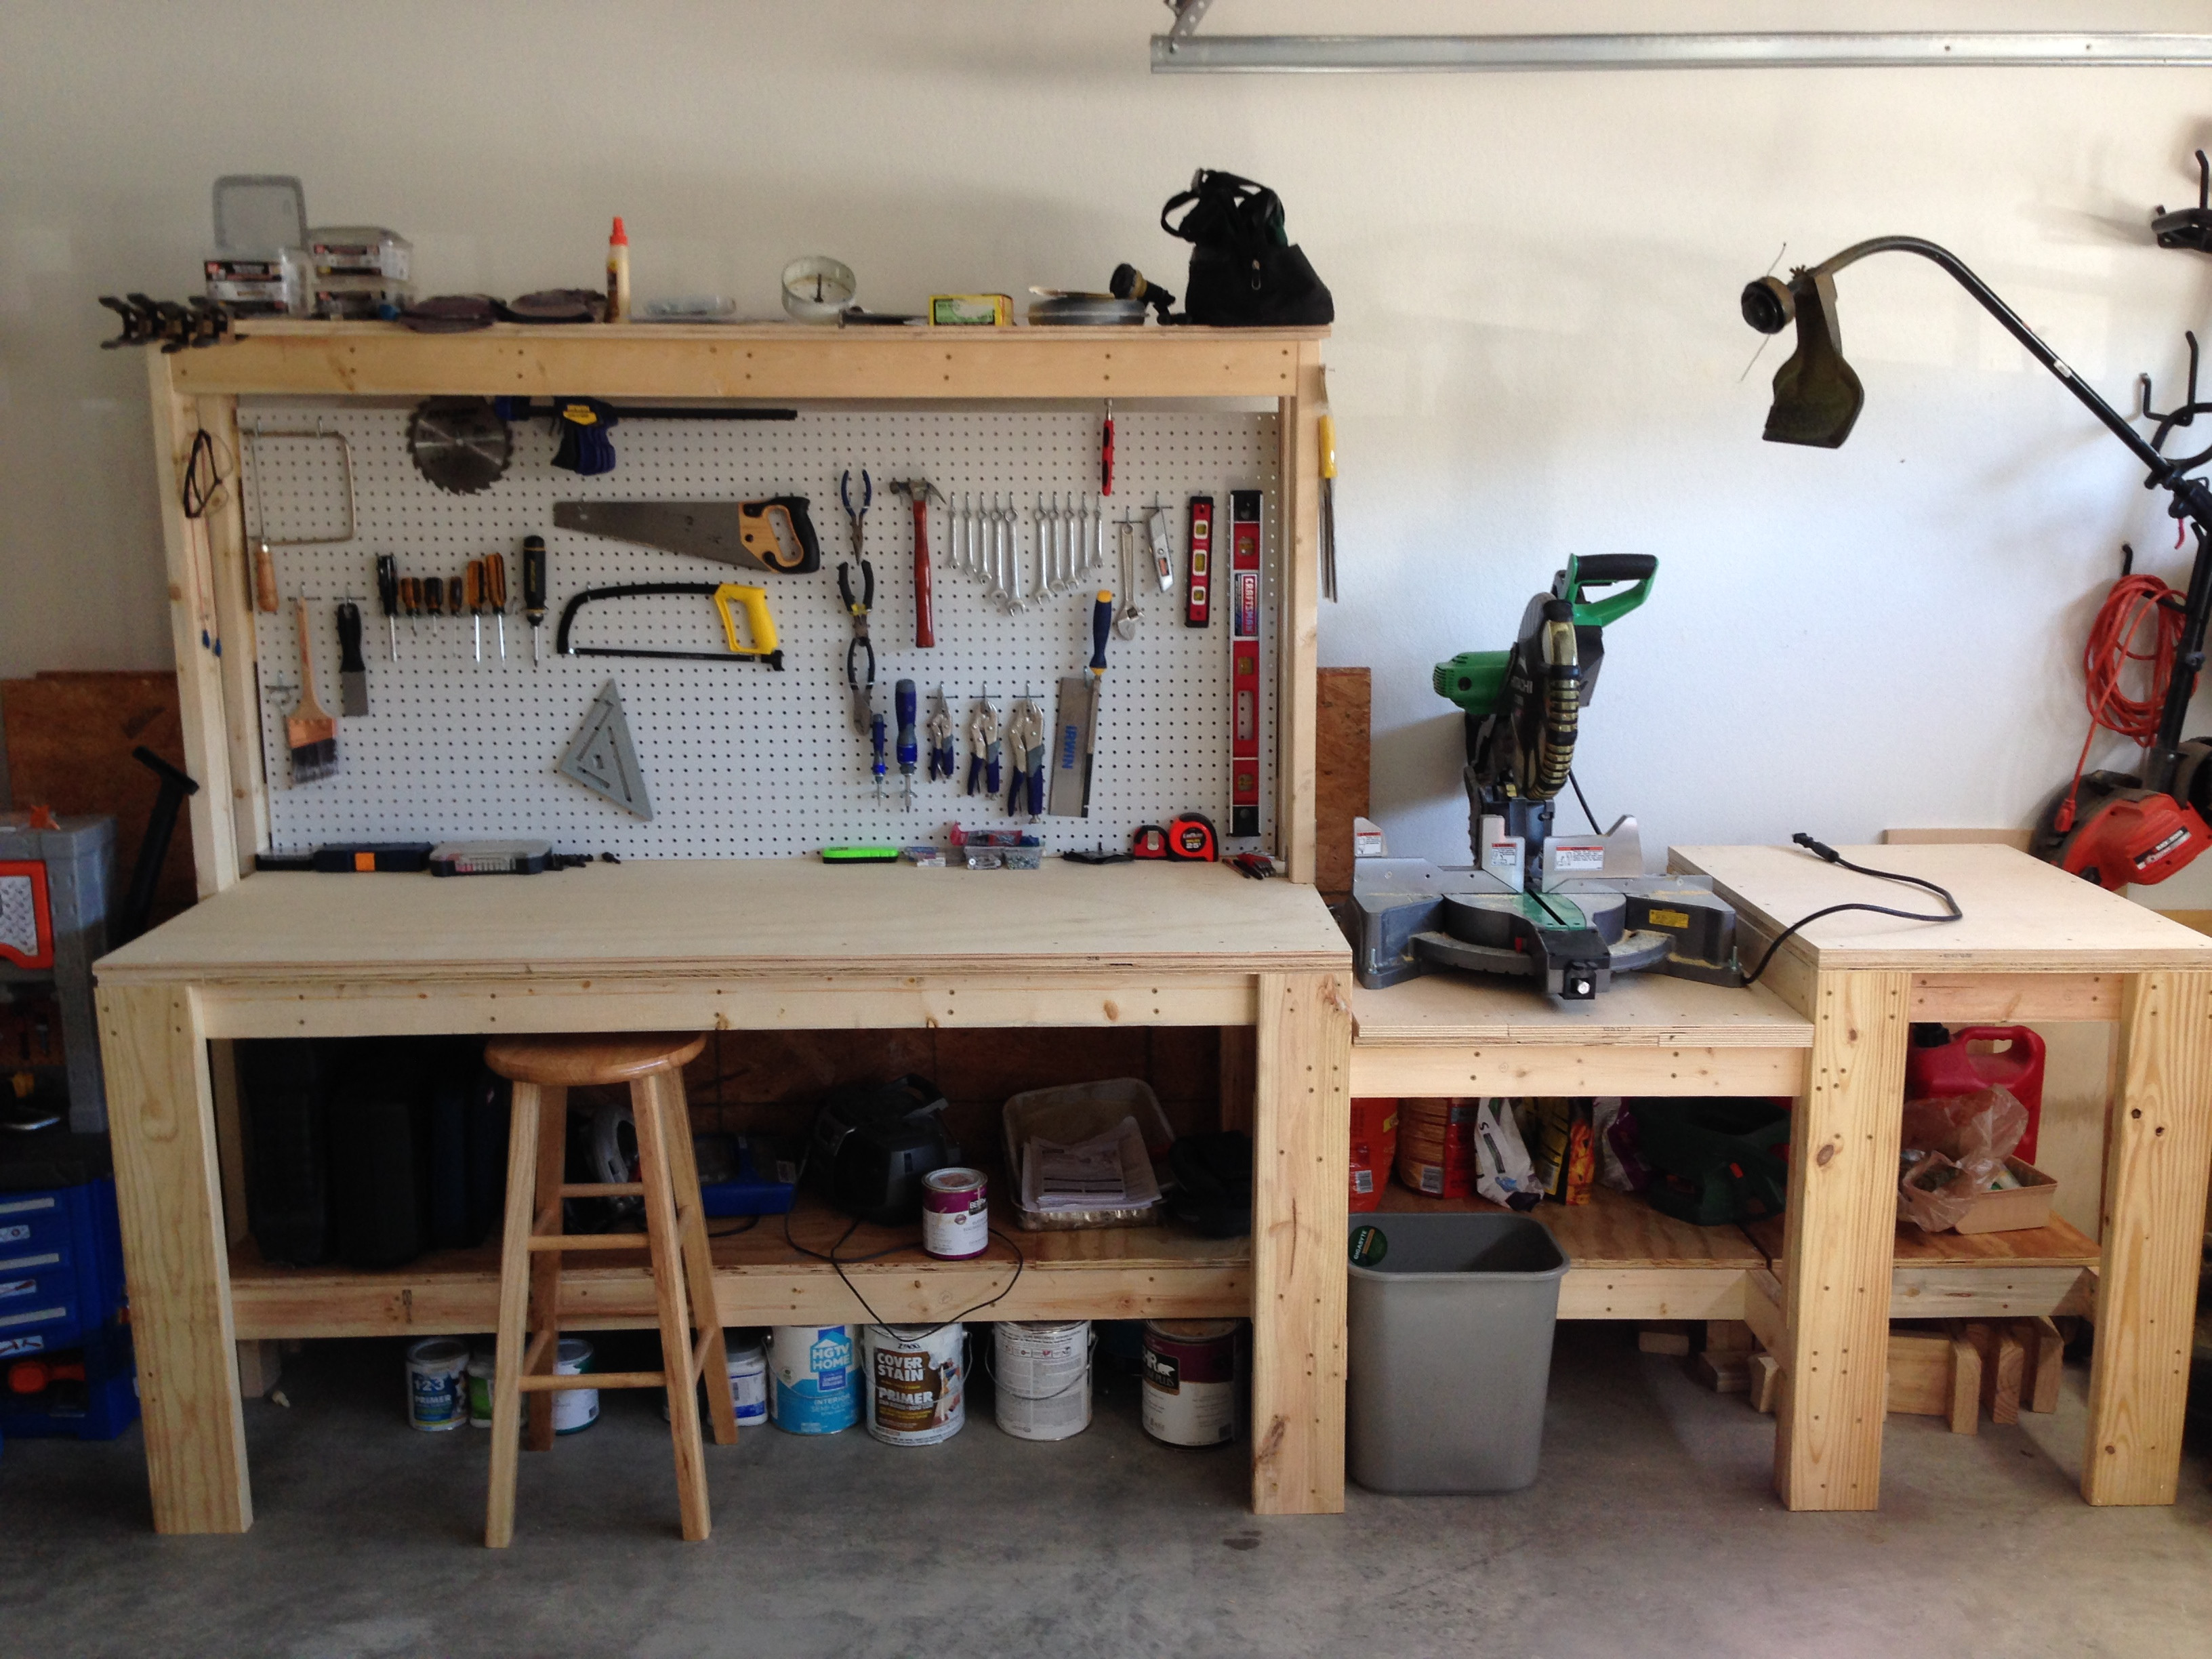 Wall Mounted Folding Workbench for Exciting Workspace Furniture Ideas: Hinged Workbench | Wall Mounted Folding Workbench | Space Saving Workbench